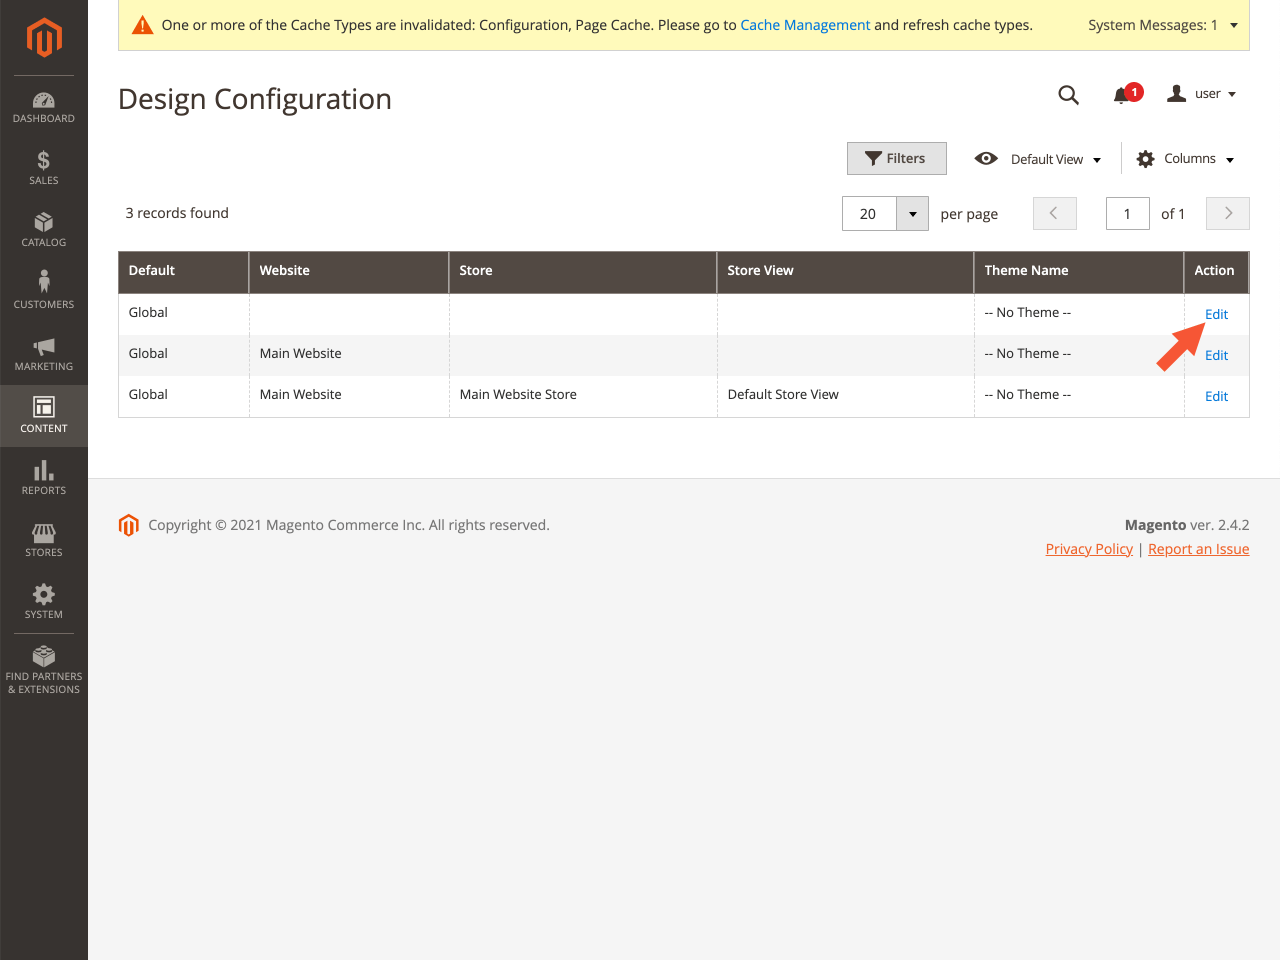 Design Configuration page with the highlighted Edit button